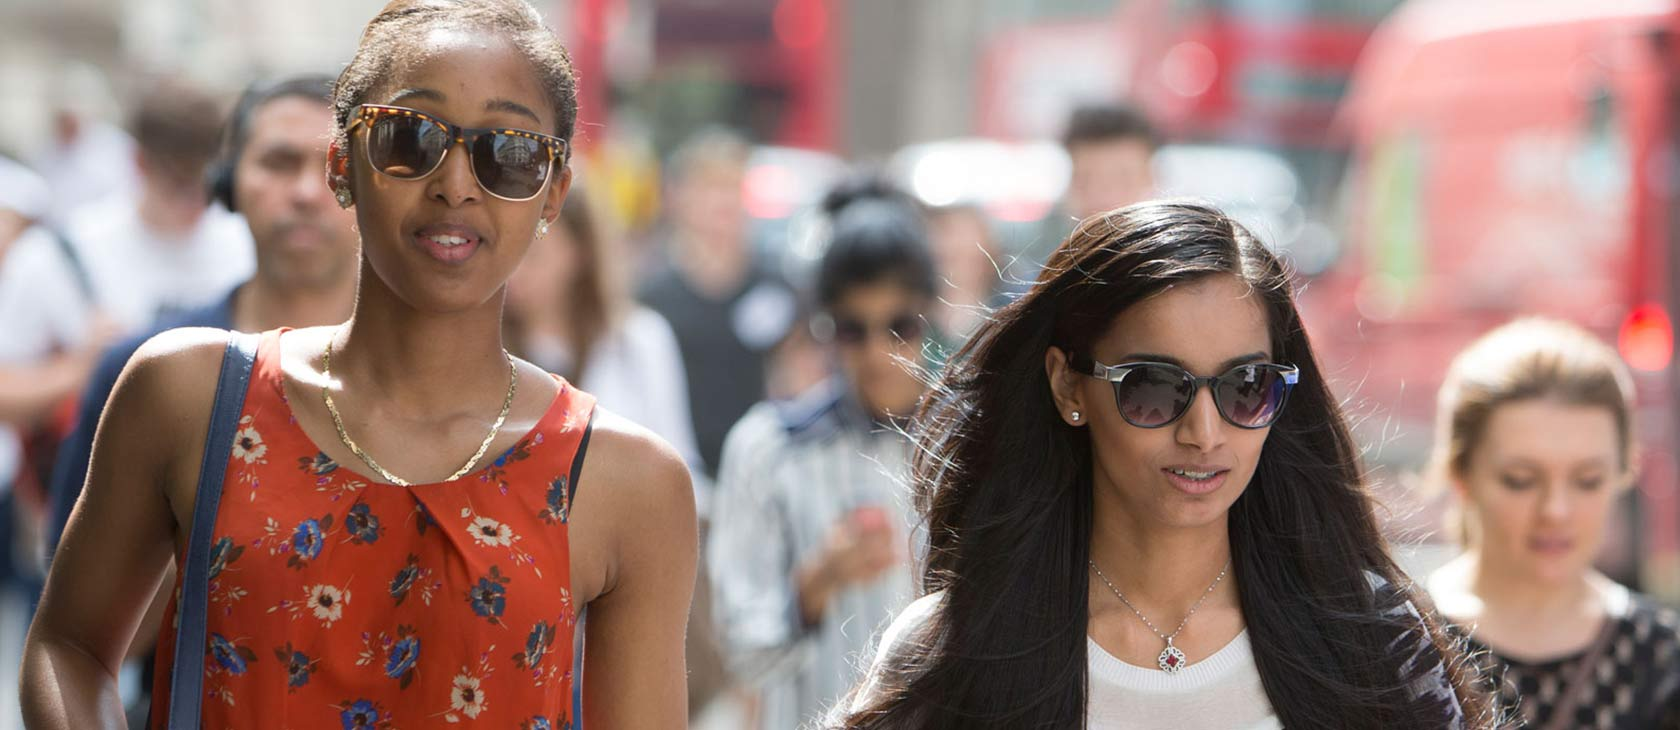 Two girls wearing summer dresses walking in London street